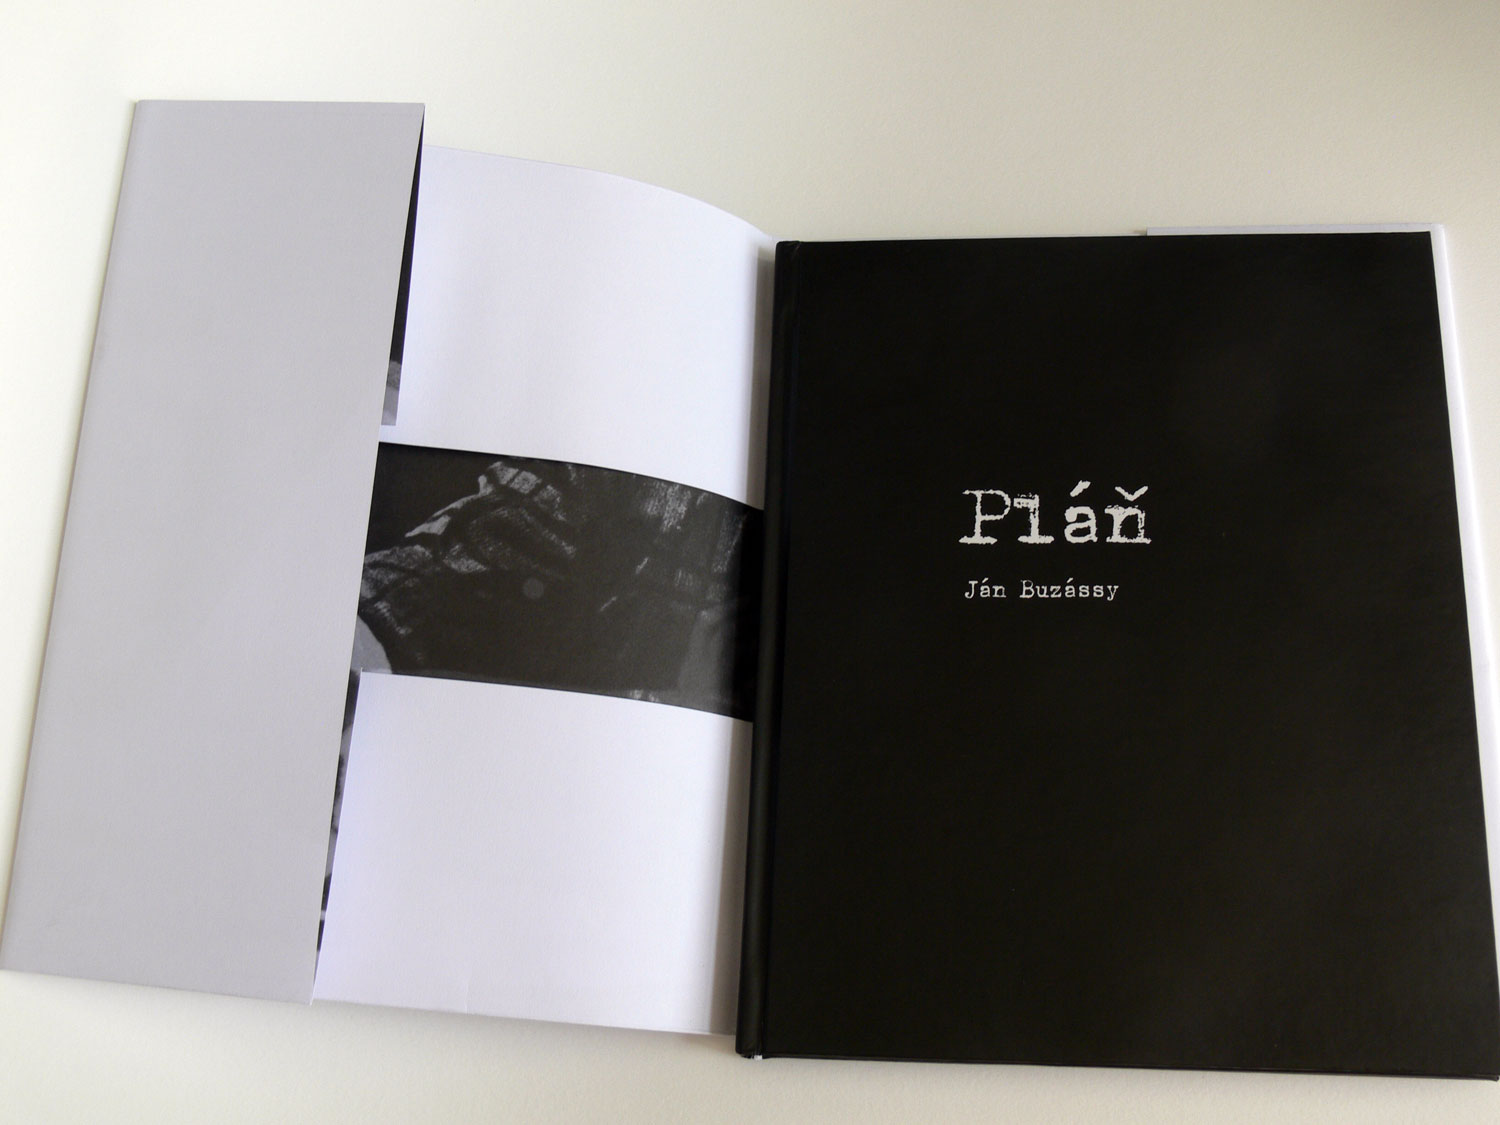 Ján Buzássy: Plain, layout and illustrations, 2010